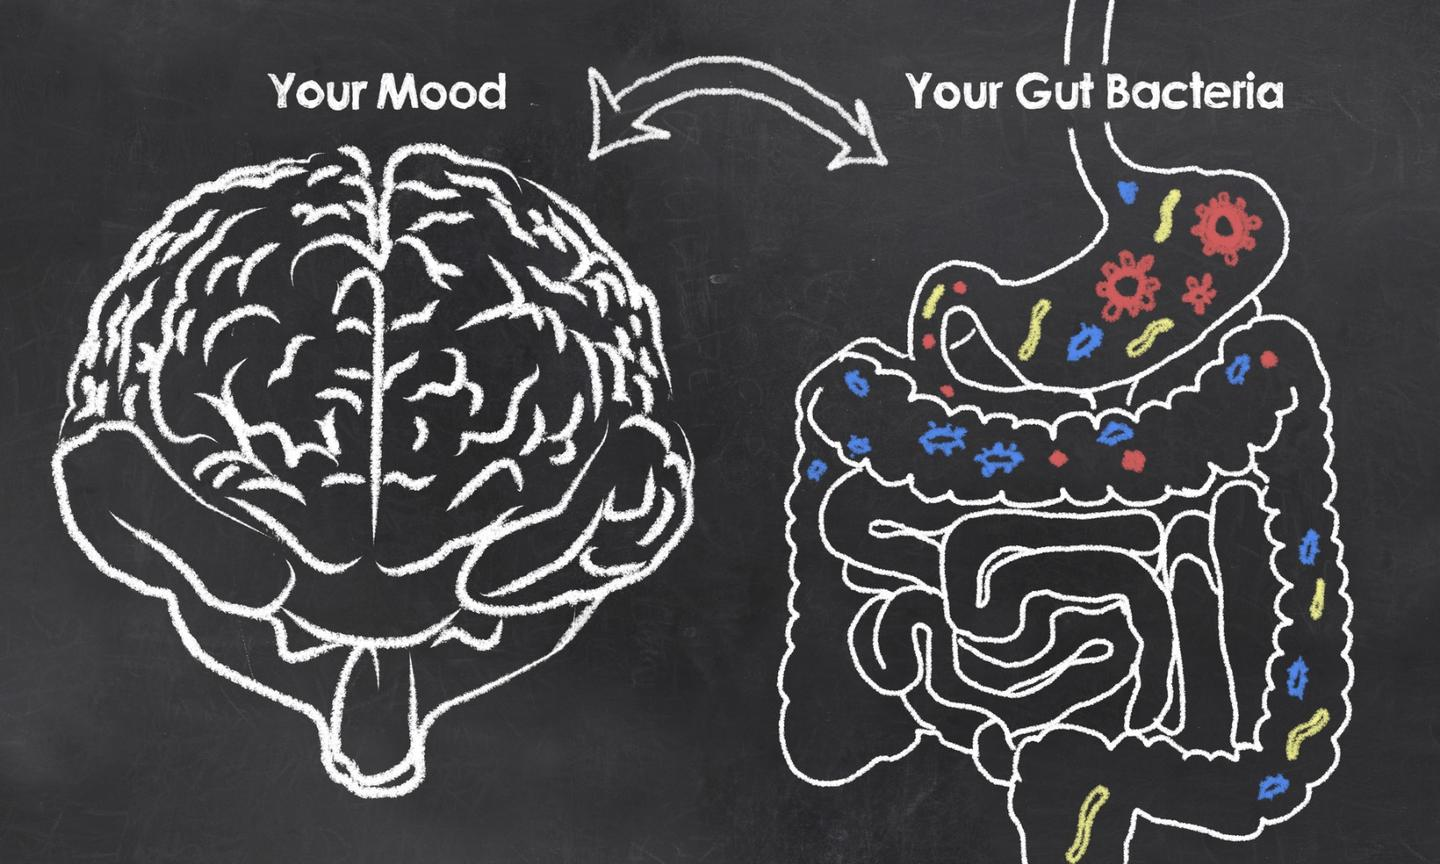 Examining over 1,000 people, a new study revealed two bacteria in particular as being strongly associated with mood and depression